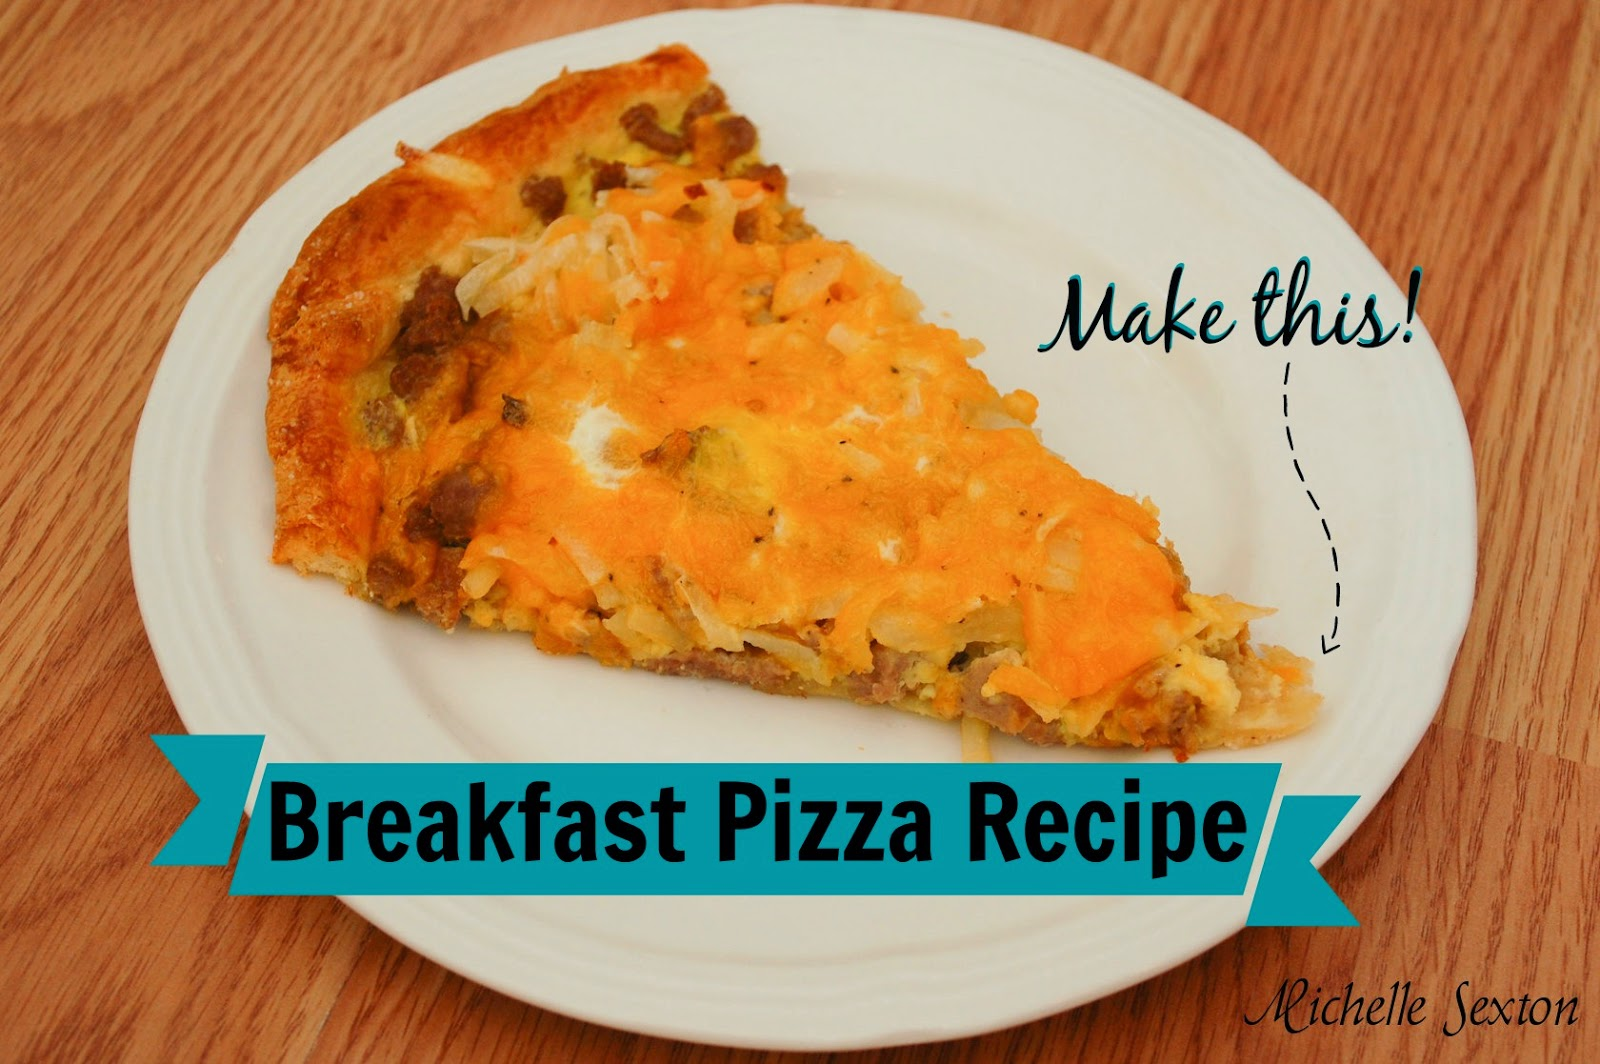 This Breakfast Pizza Recipe is the perfect thing to make for any meal, regardless of the time of day. Click through to learn how to make this.